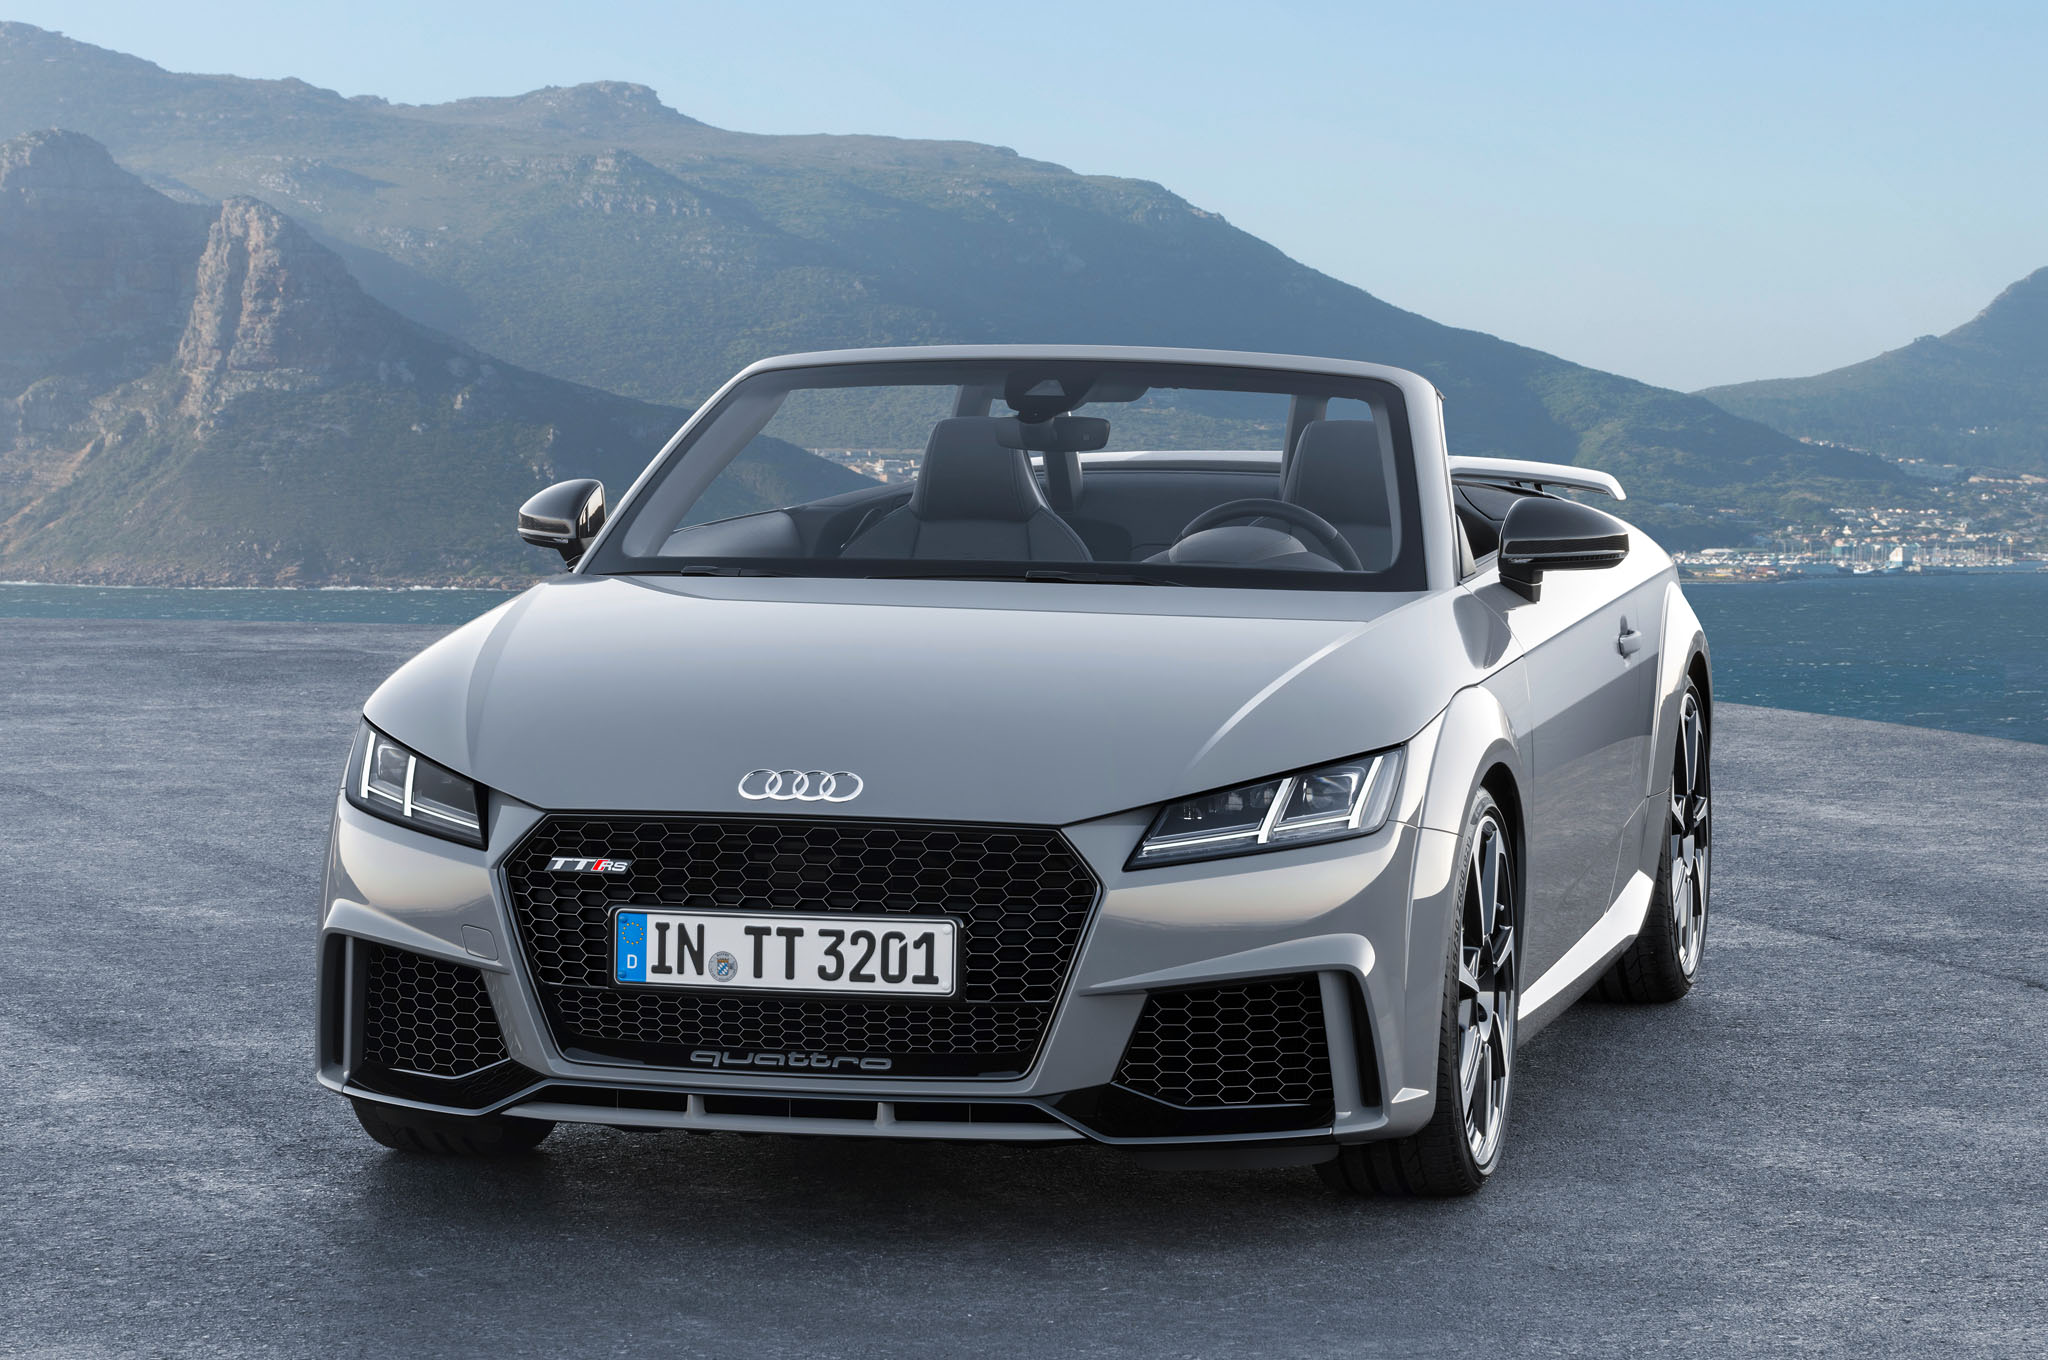 2017 Audi TT RS plus photo - 3